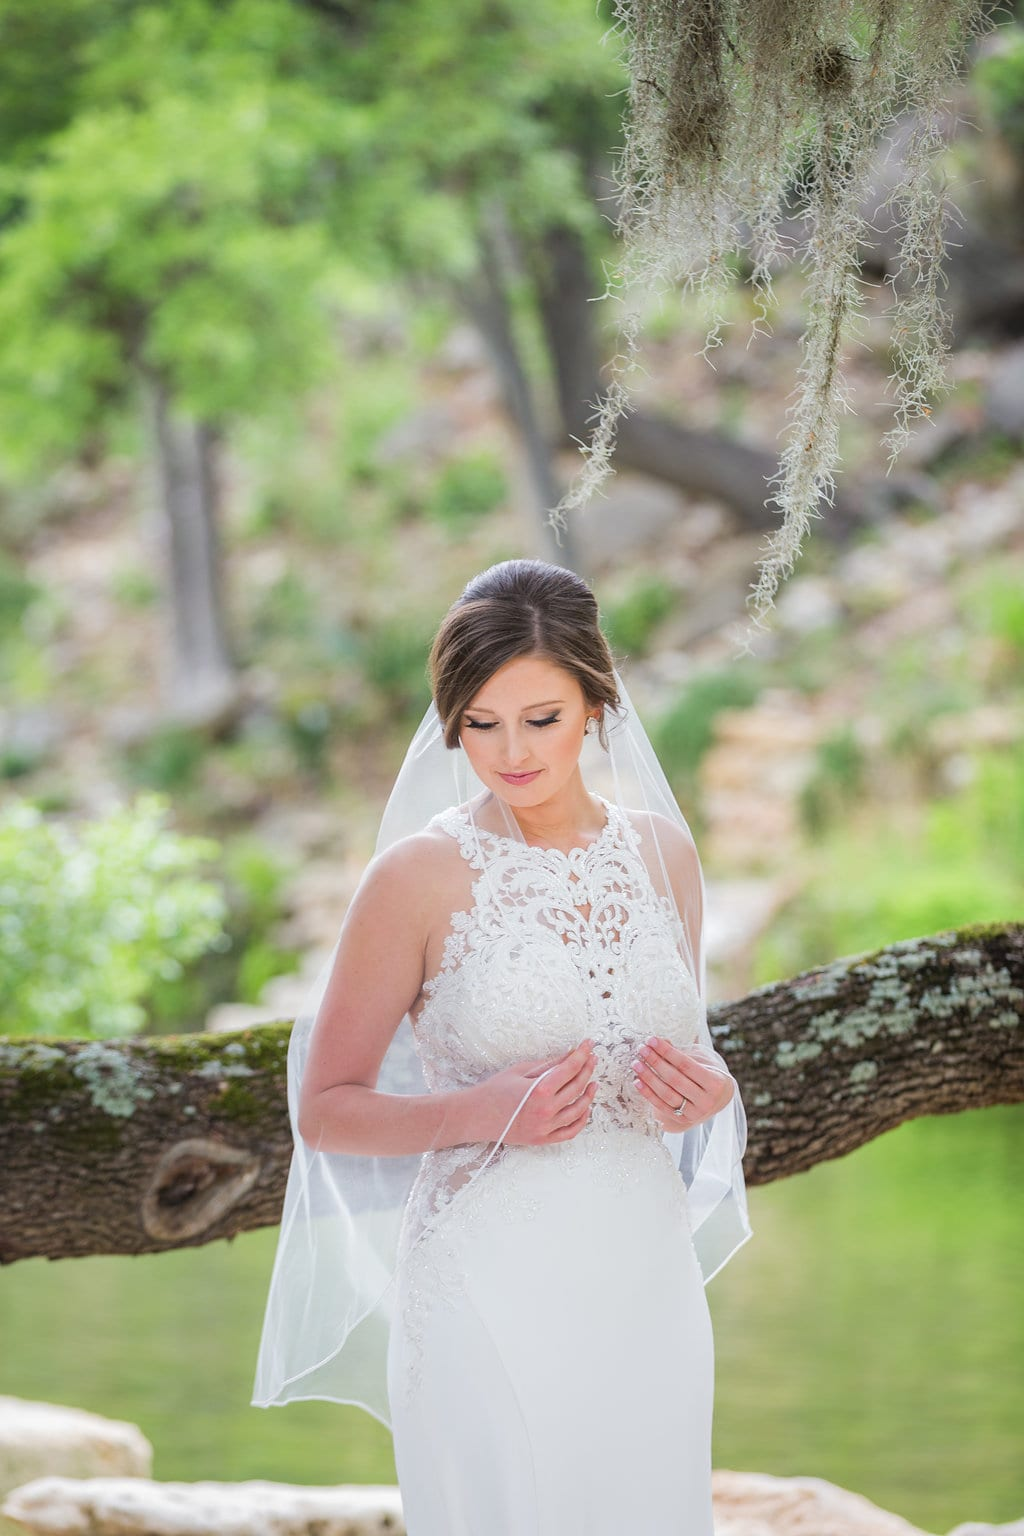 Samantha's Bridal Hidden Falls back of gown under the tree close up pensive